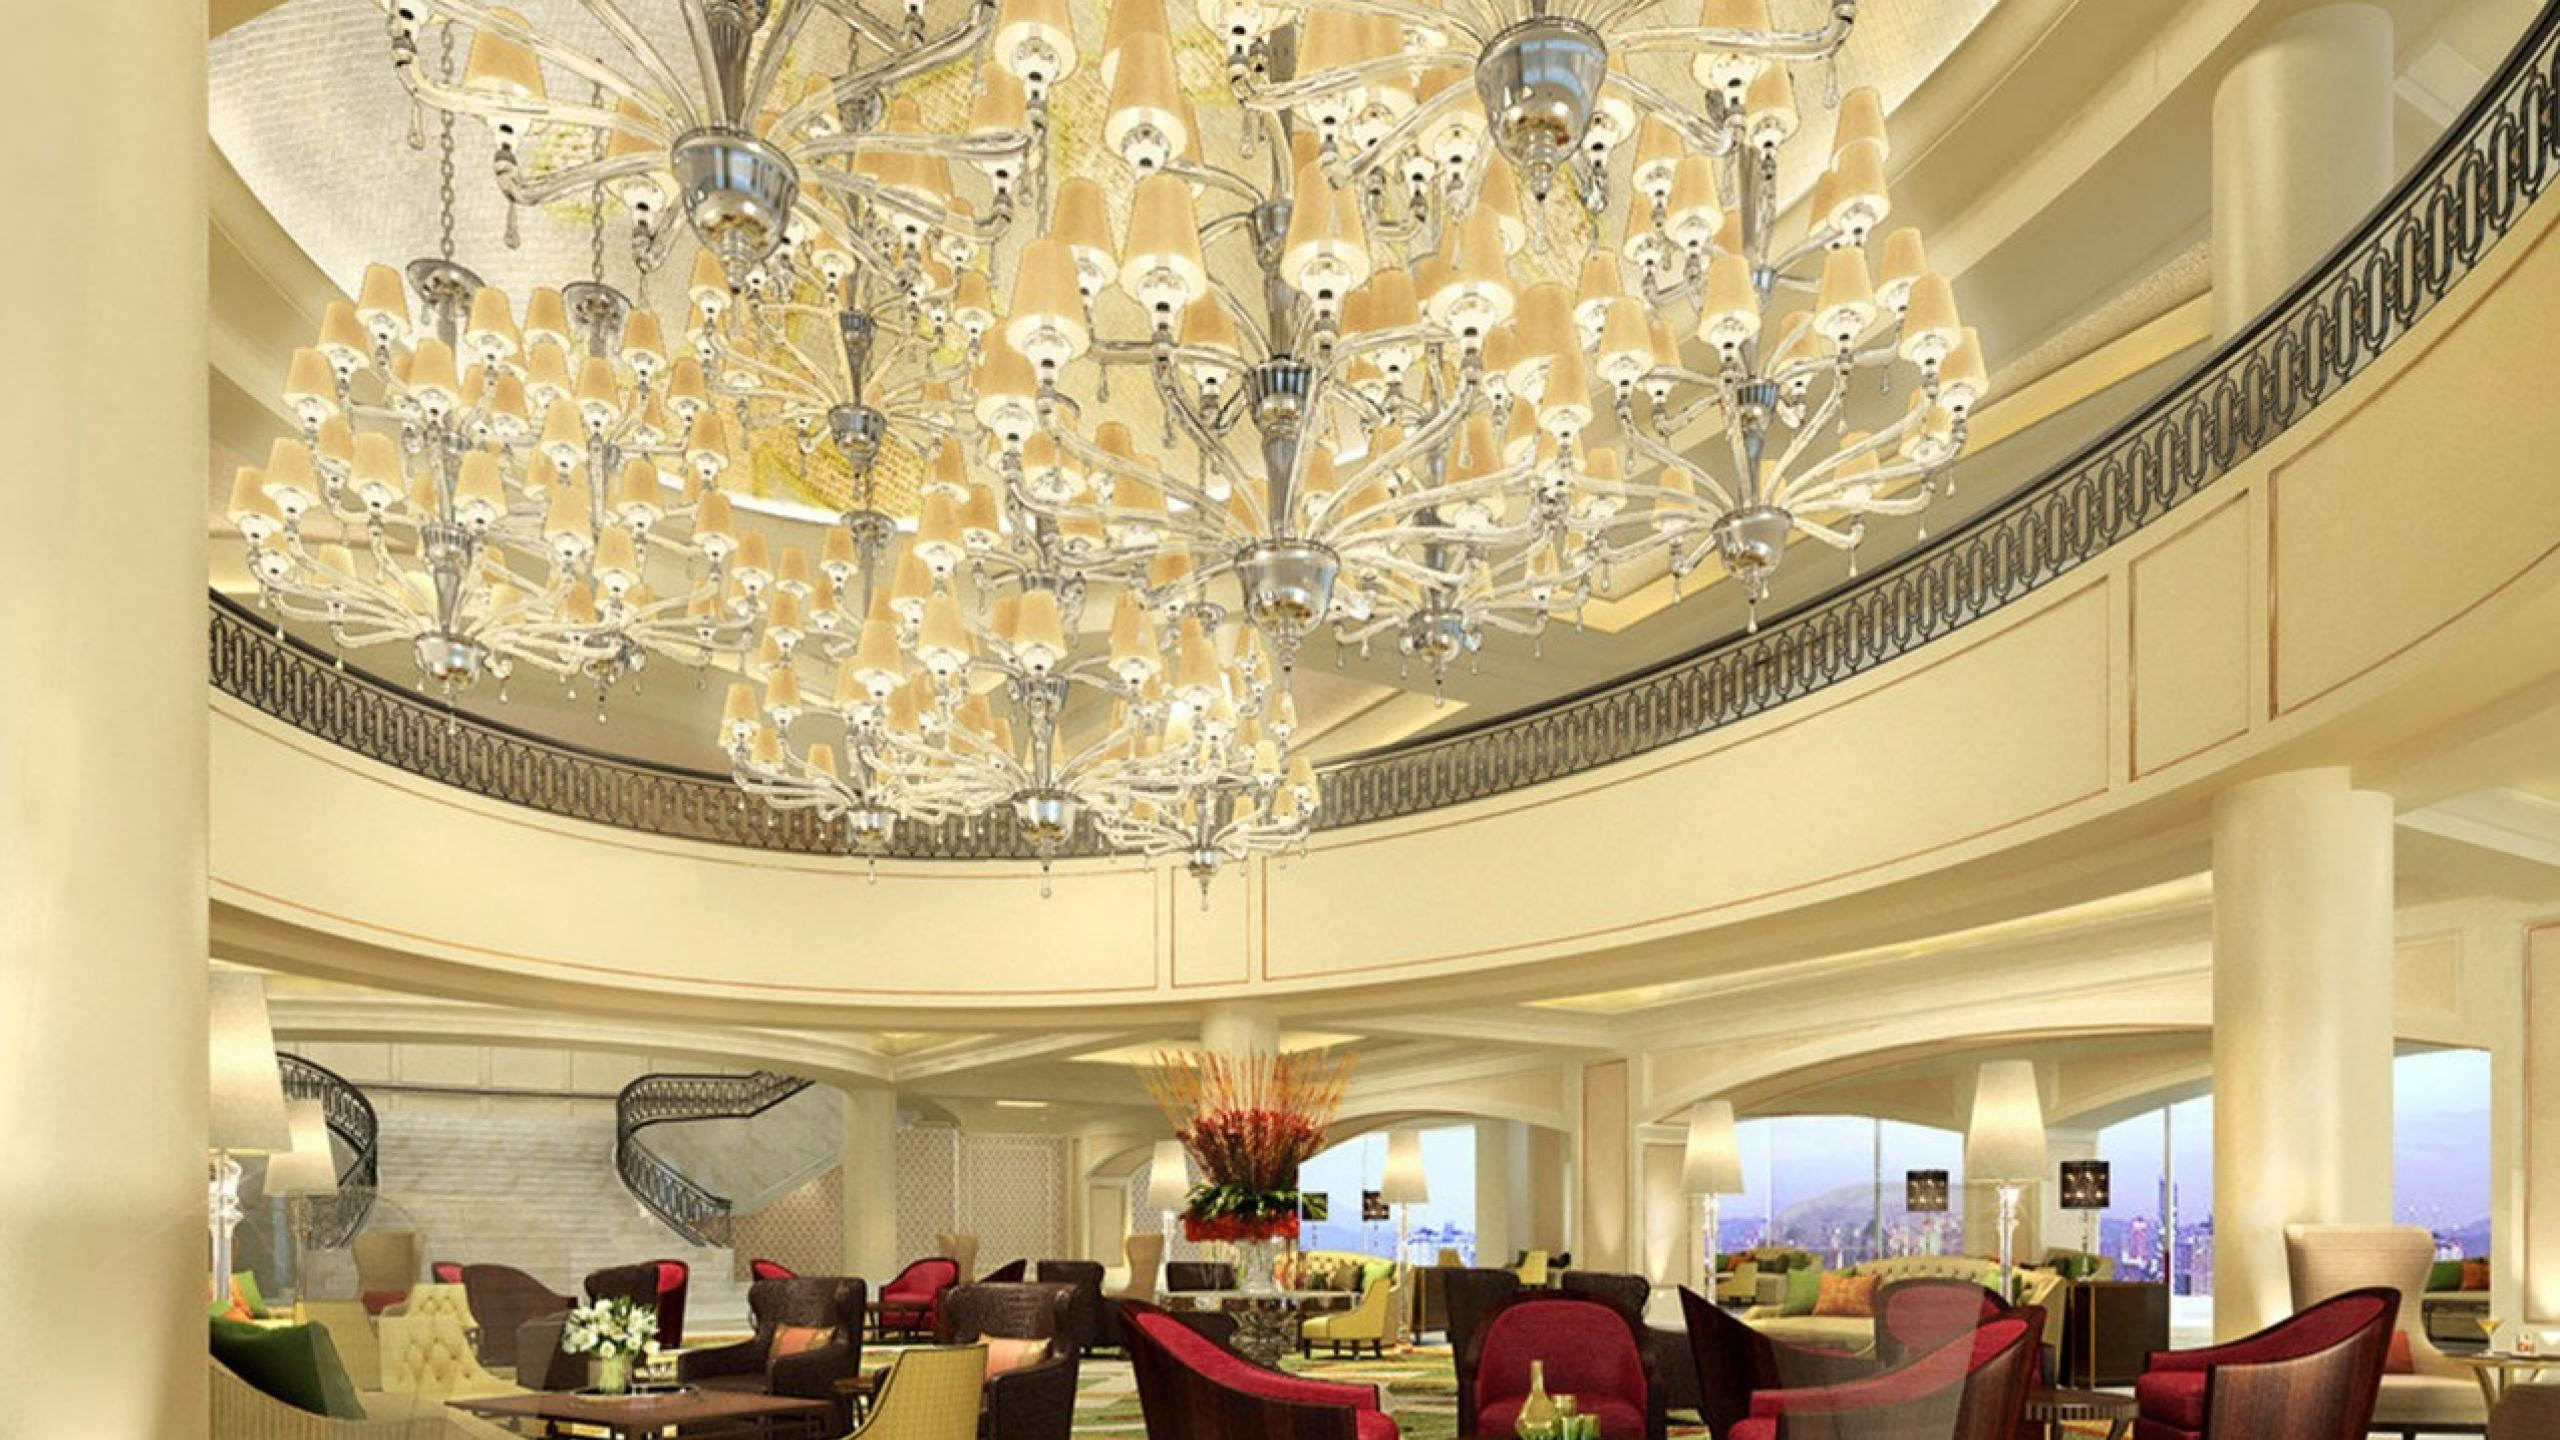 10 Beautiful Chandeliers For A Hotel Design Throughout Hotel Chandelier (View 4 of 12)